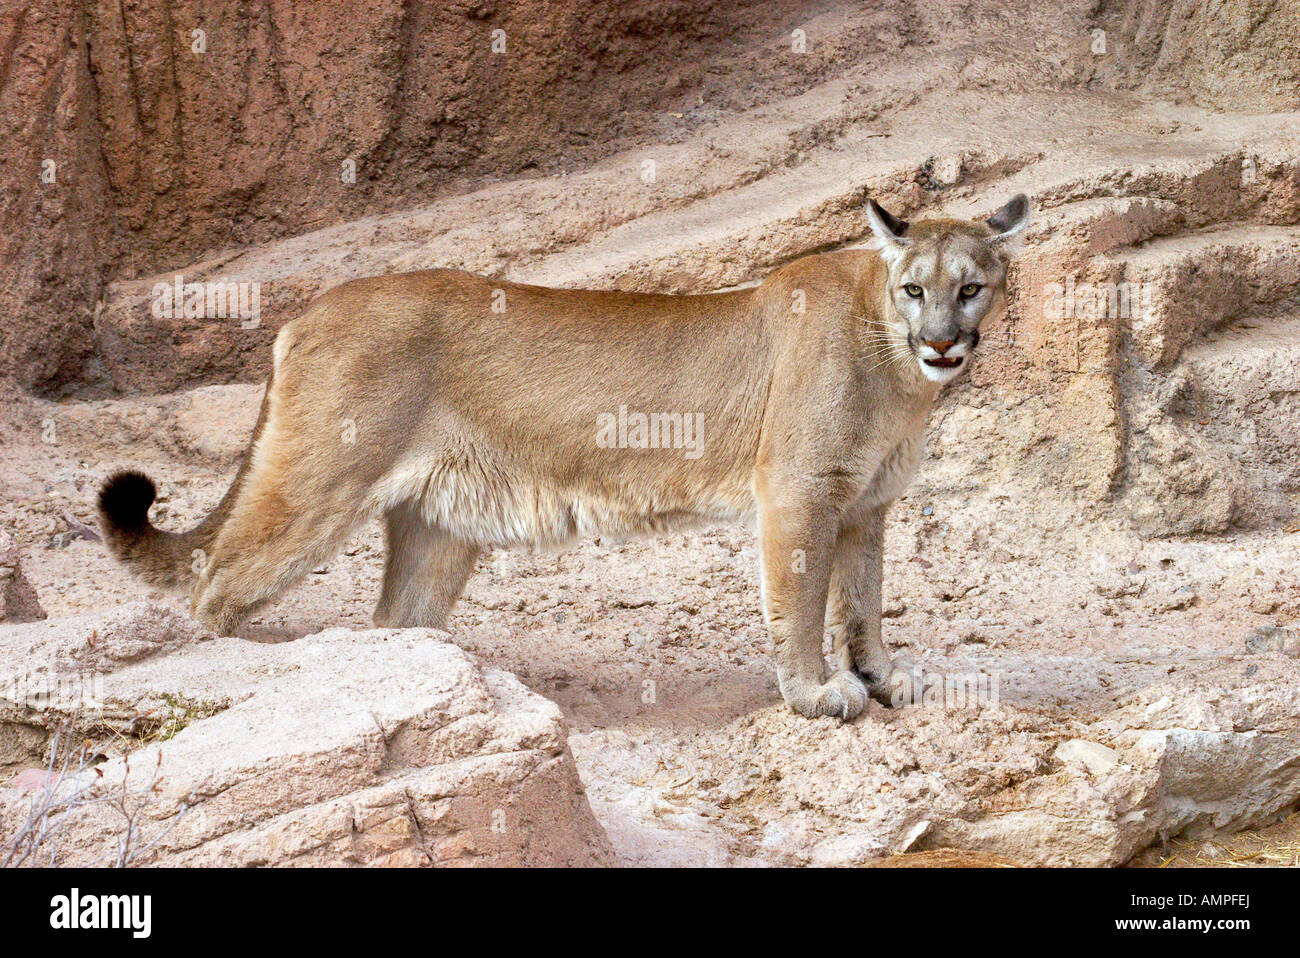 Mountain lions in the desert